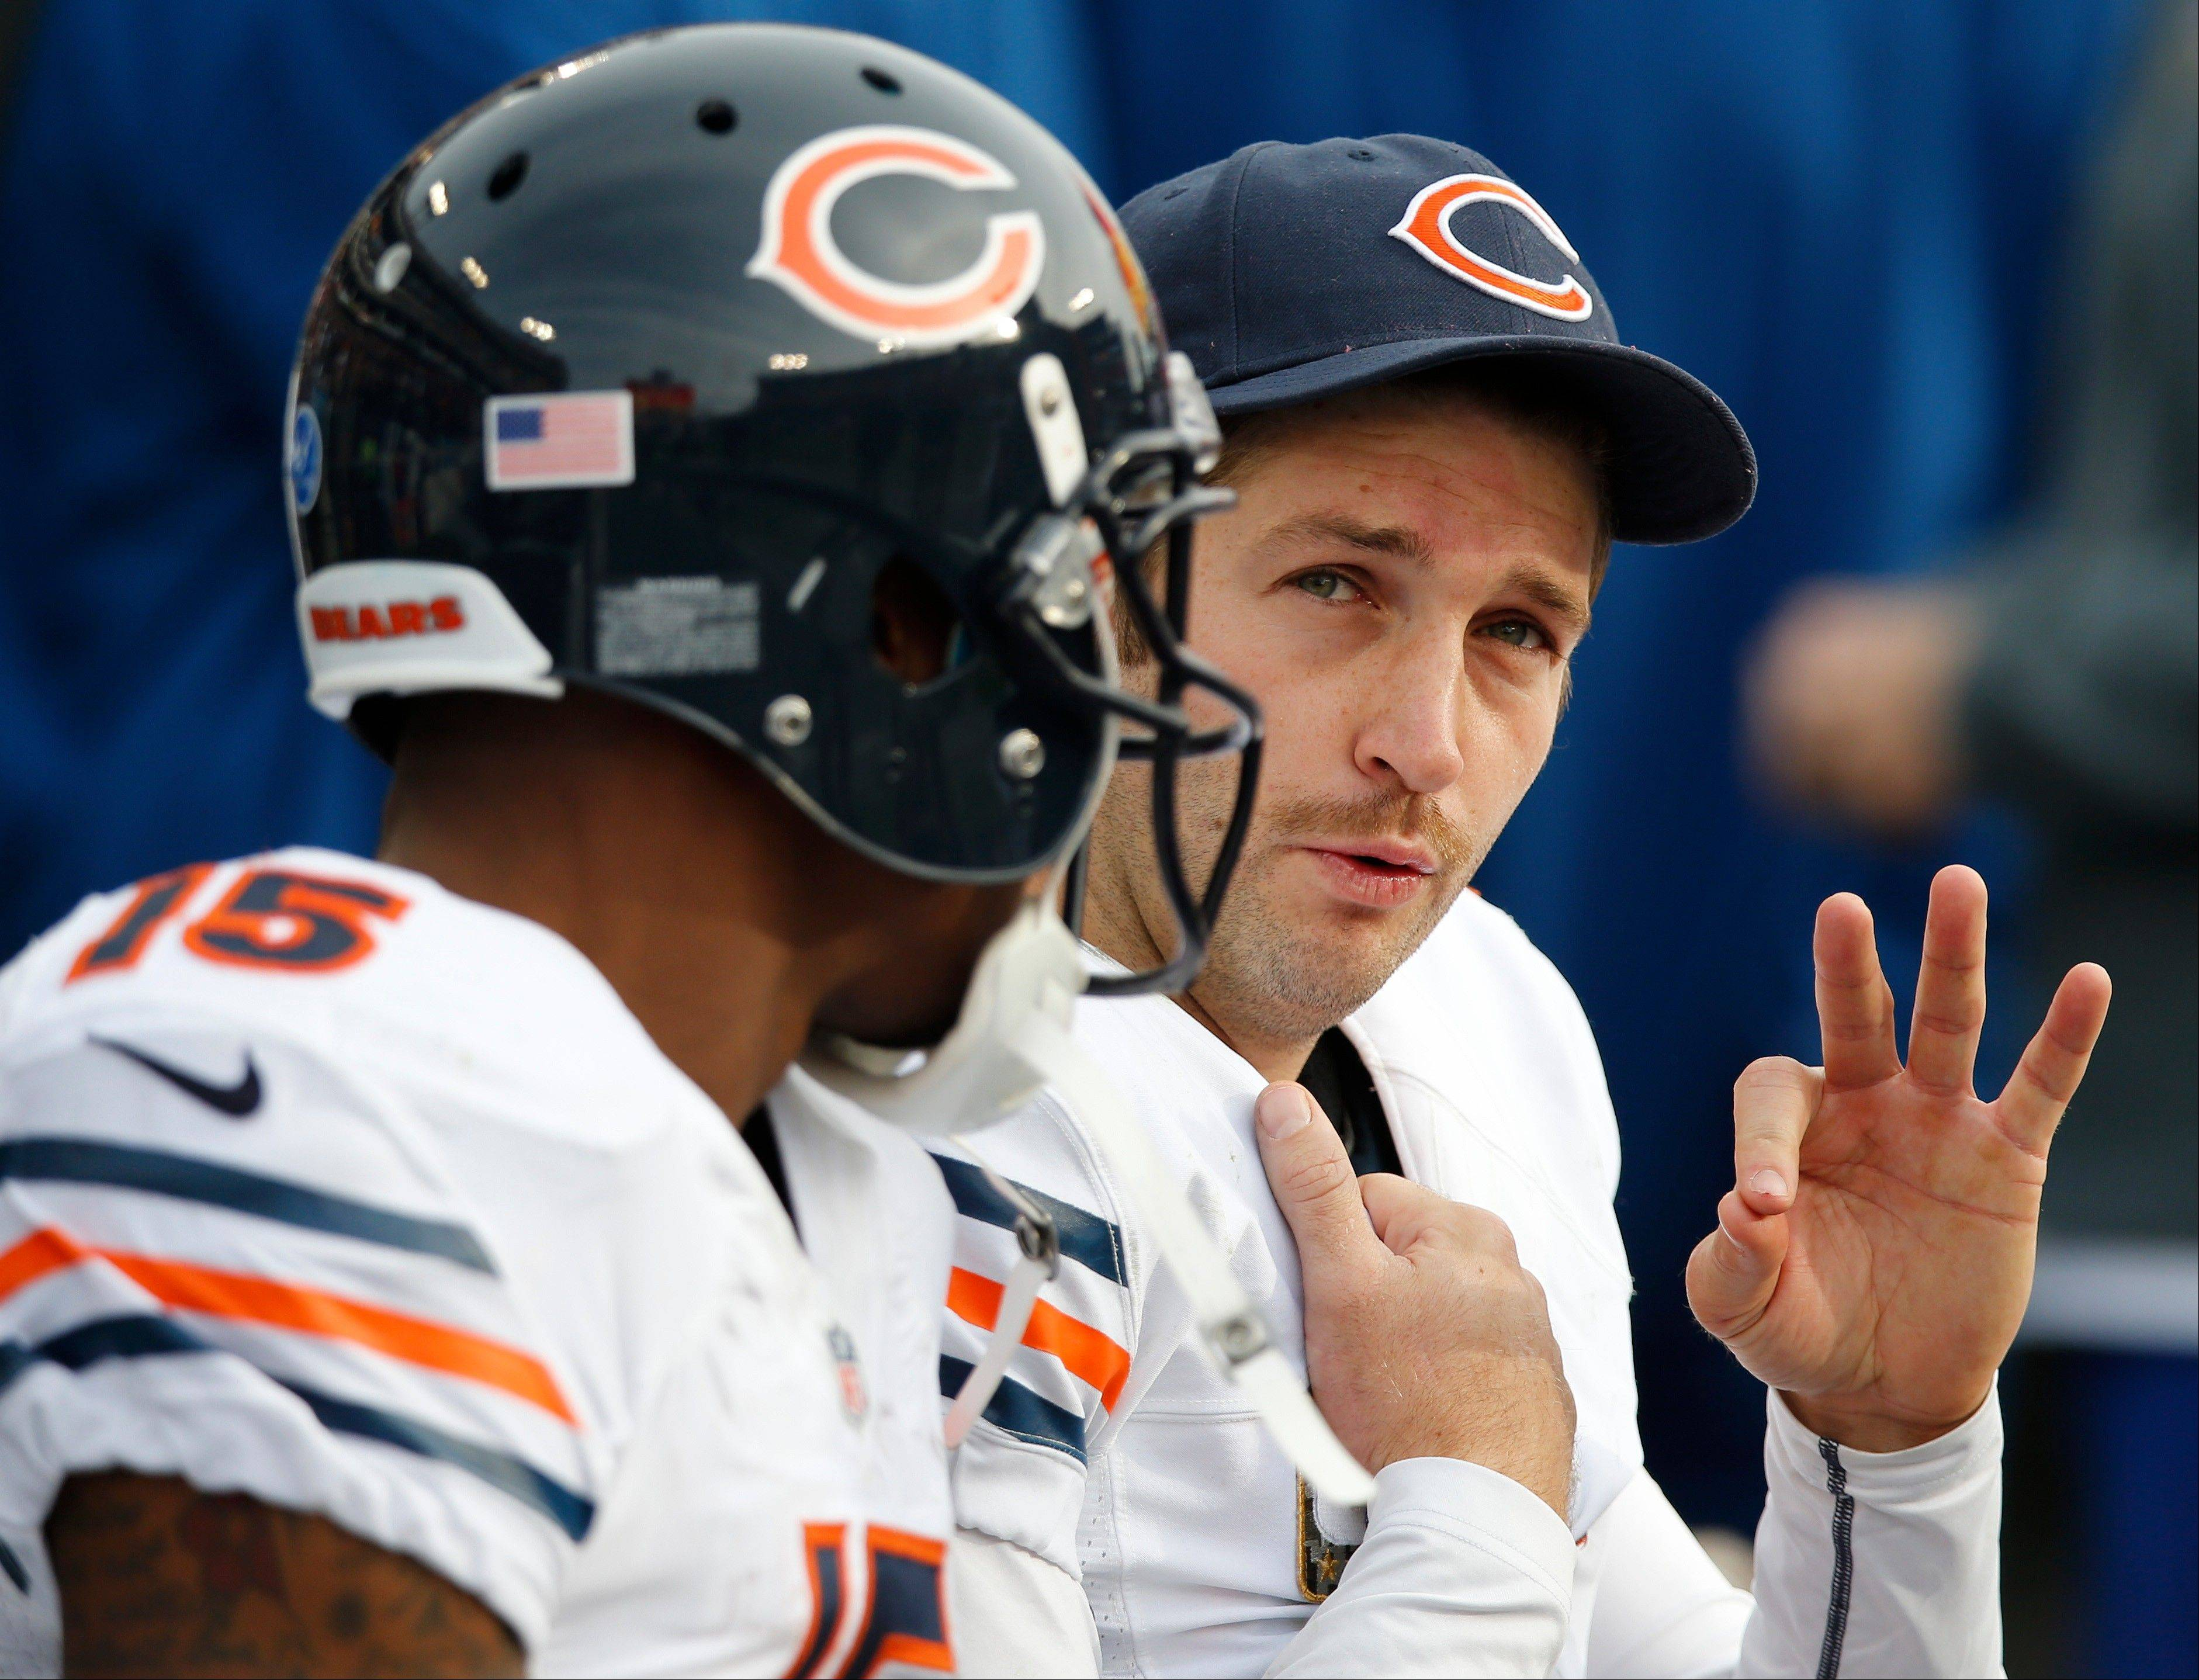 Sunday uncertain, but Cutler cleared to practice